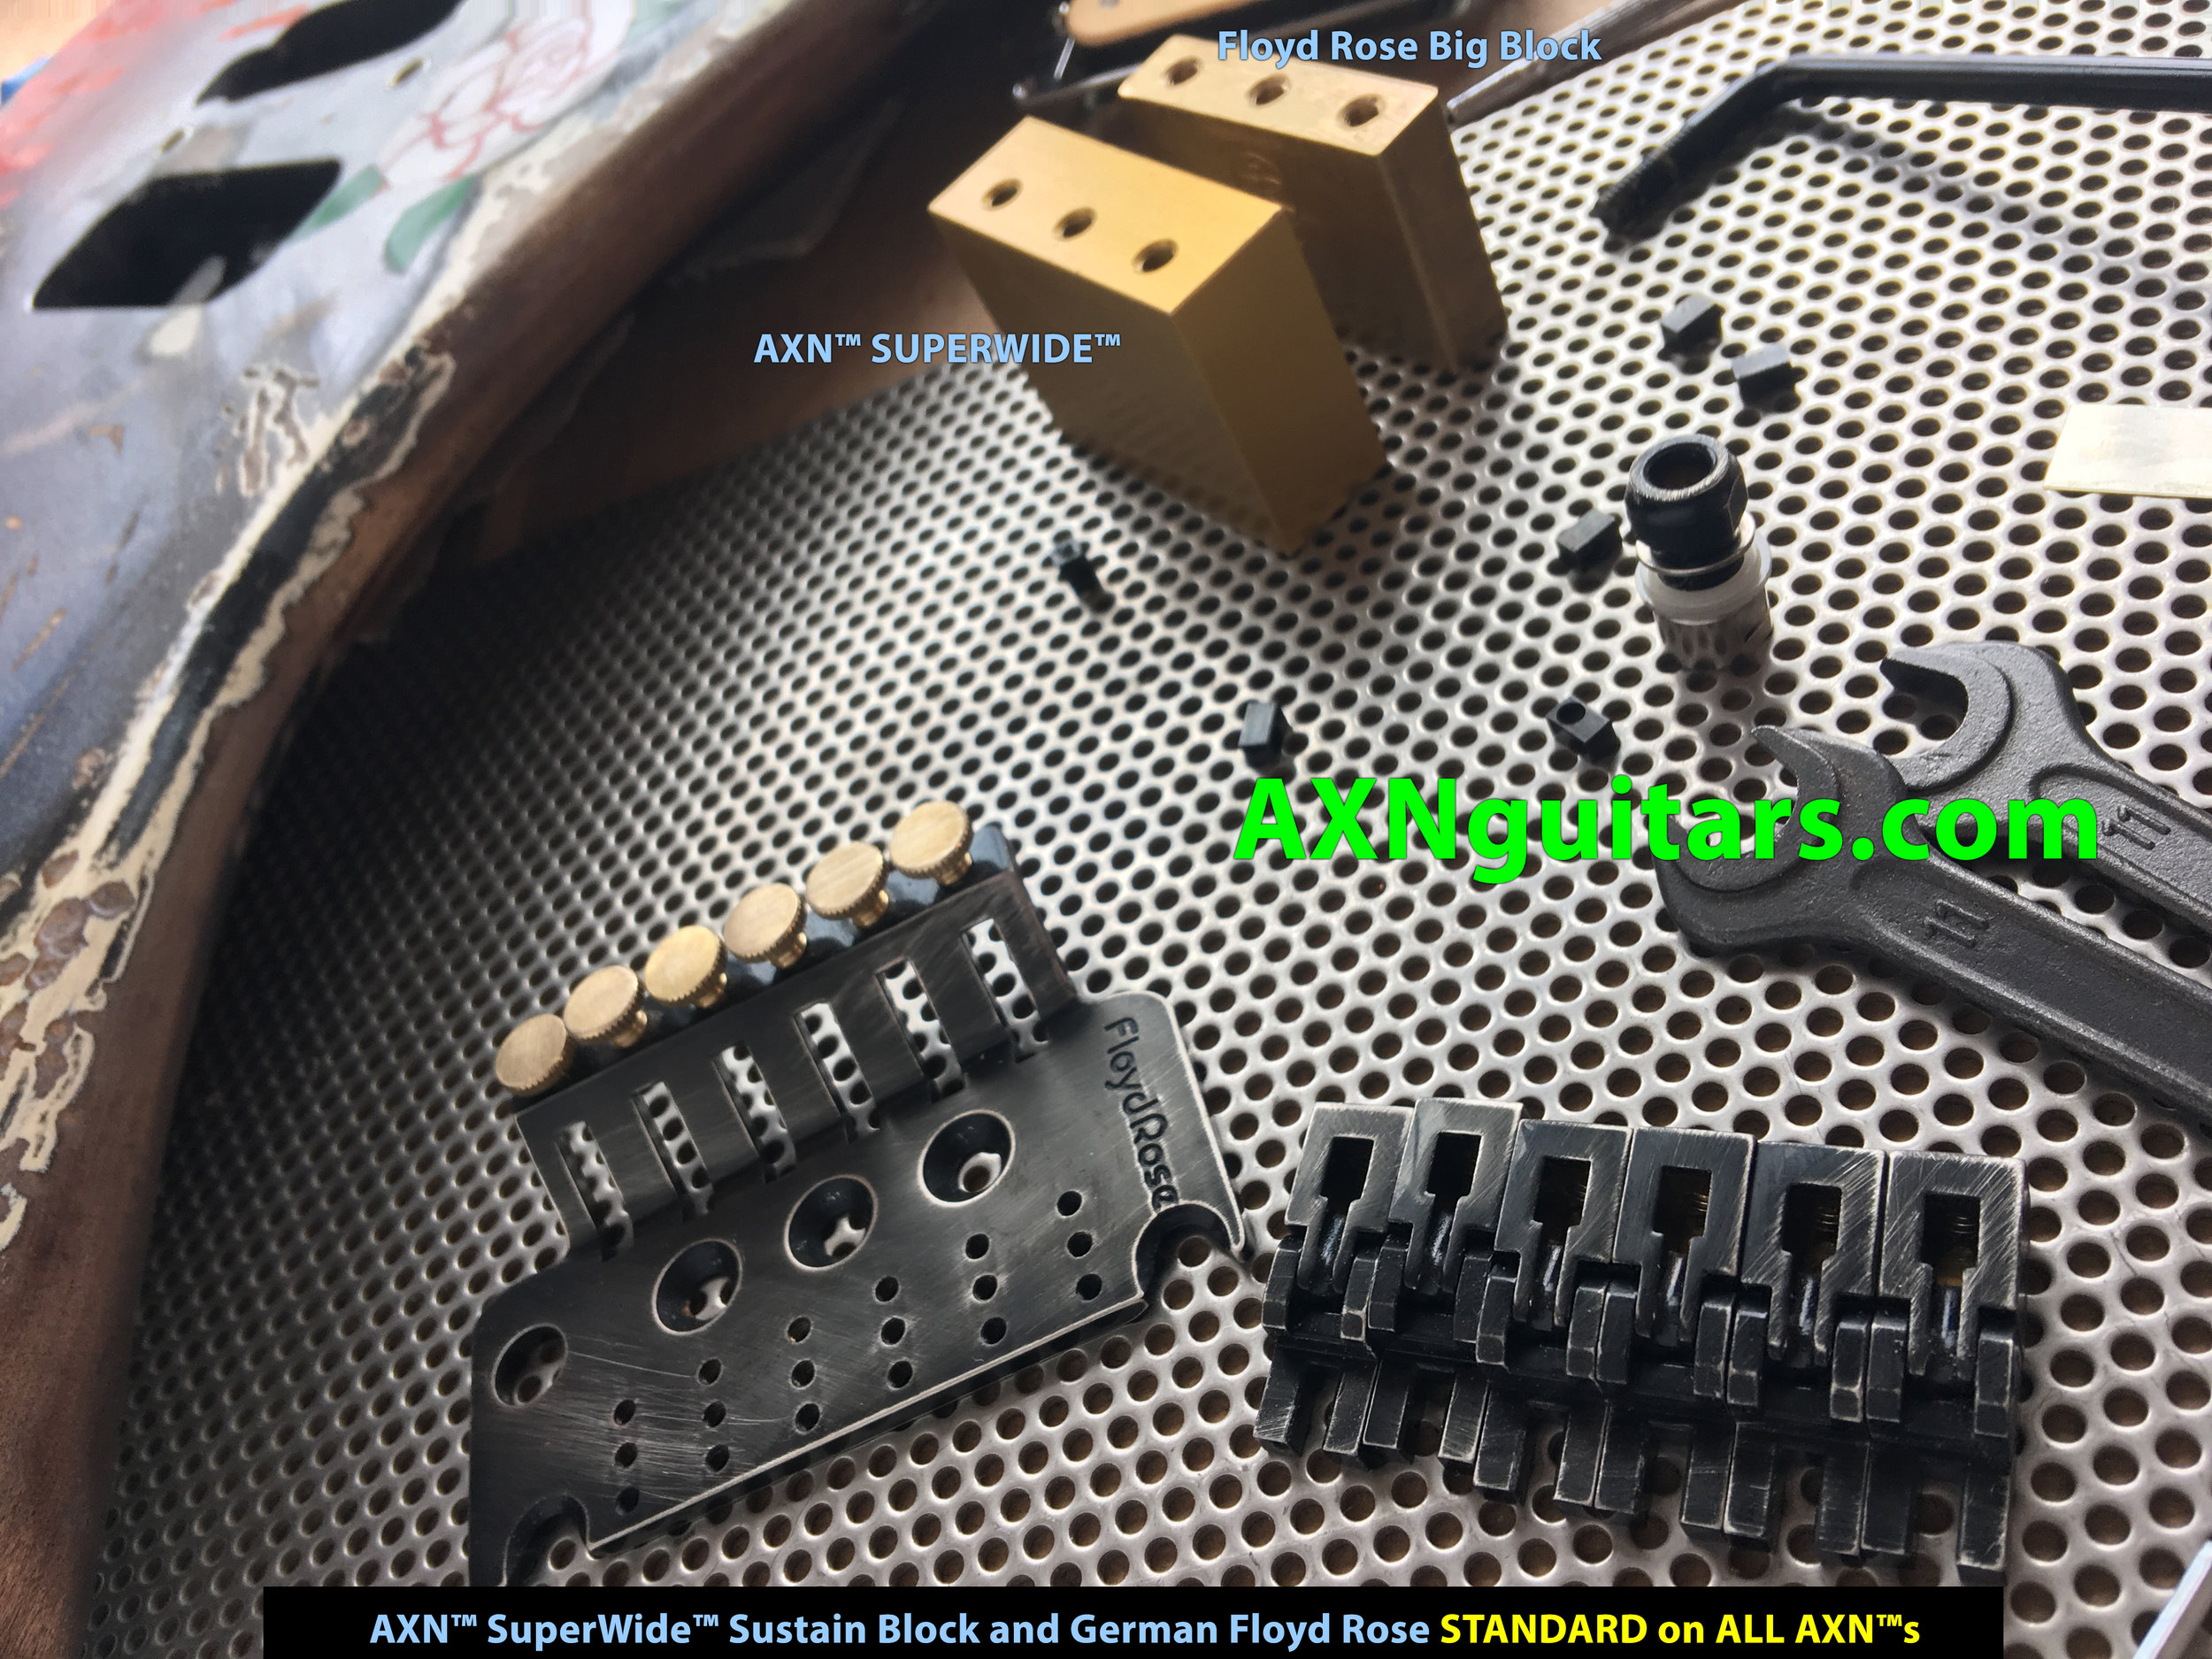 axn-superwide-assembly-001.jpg